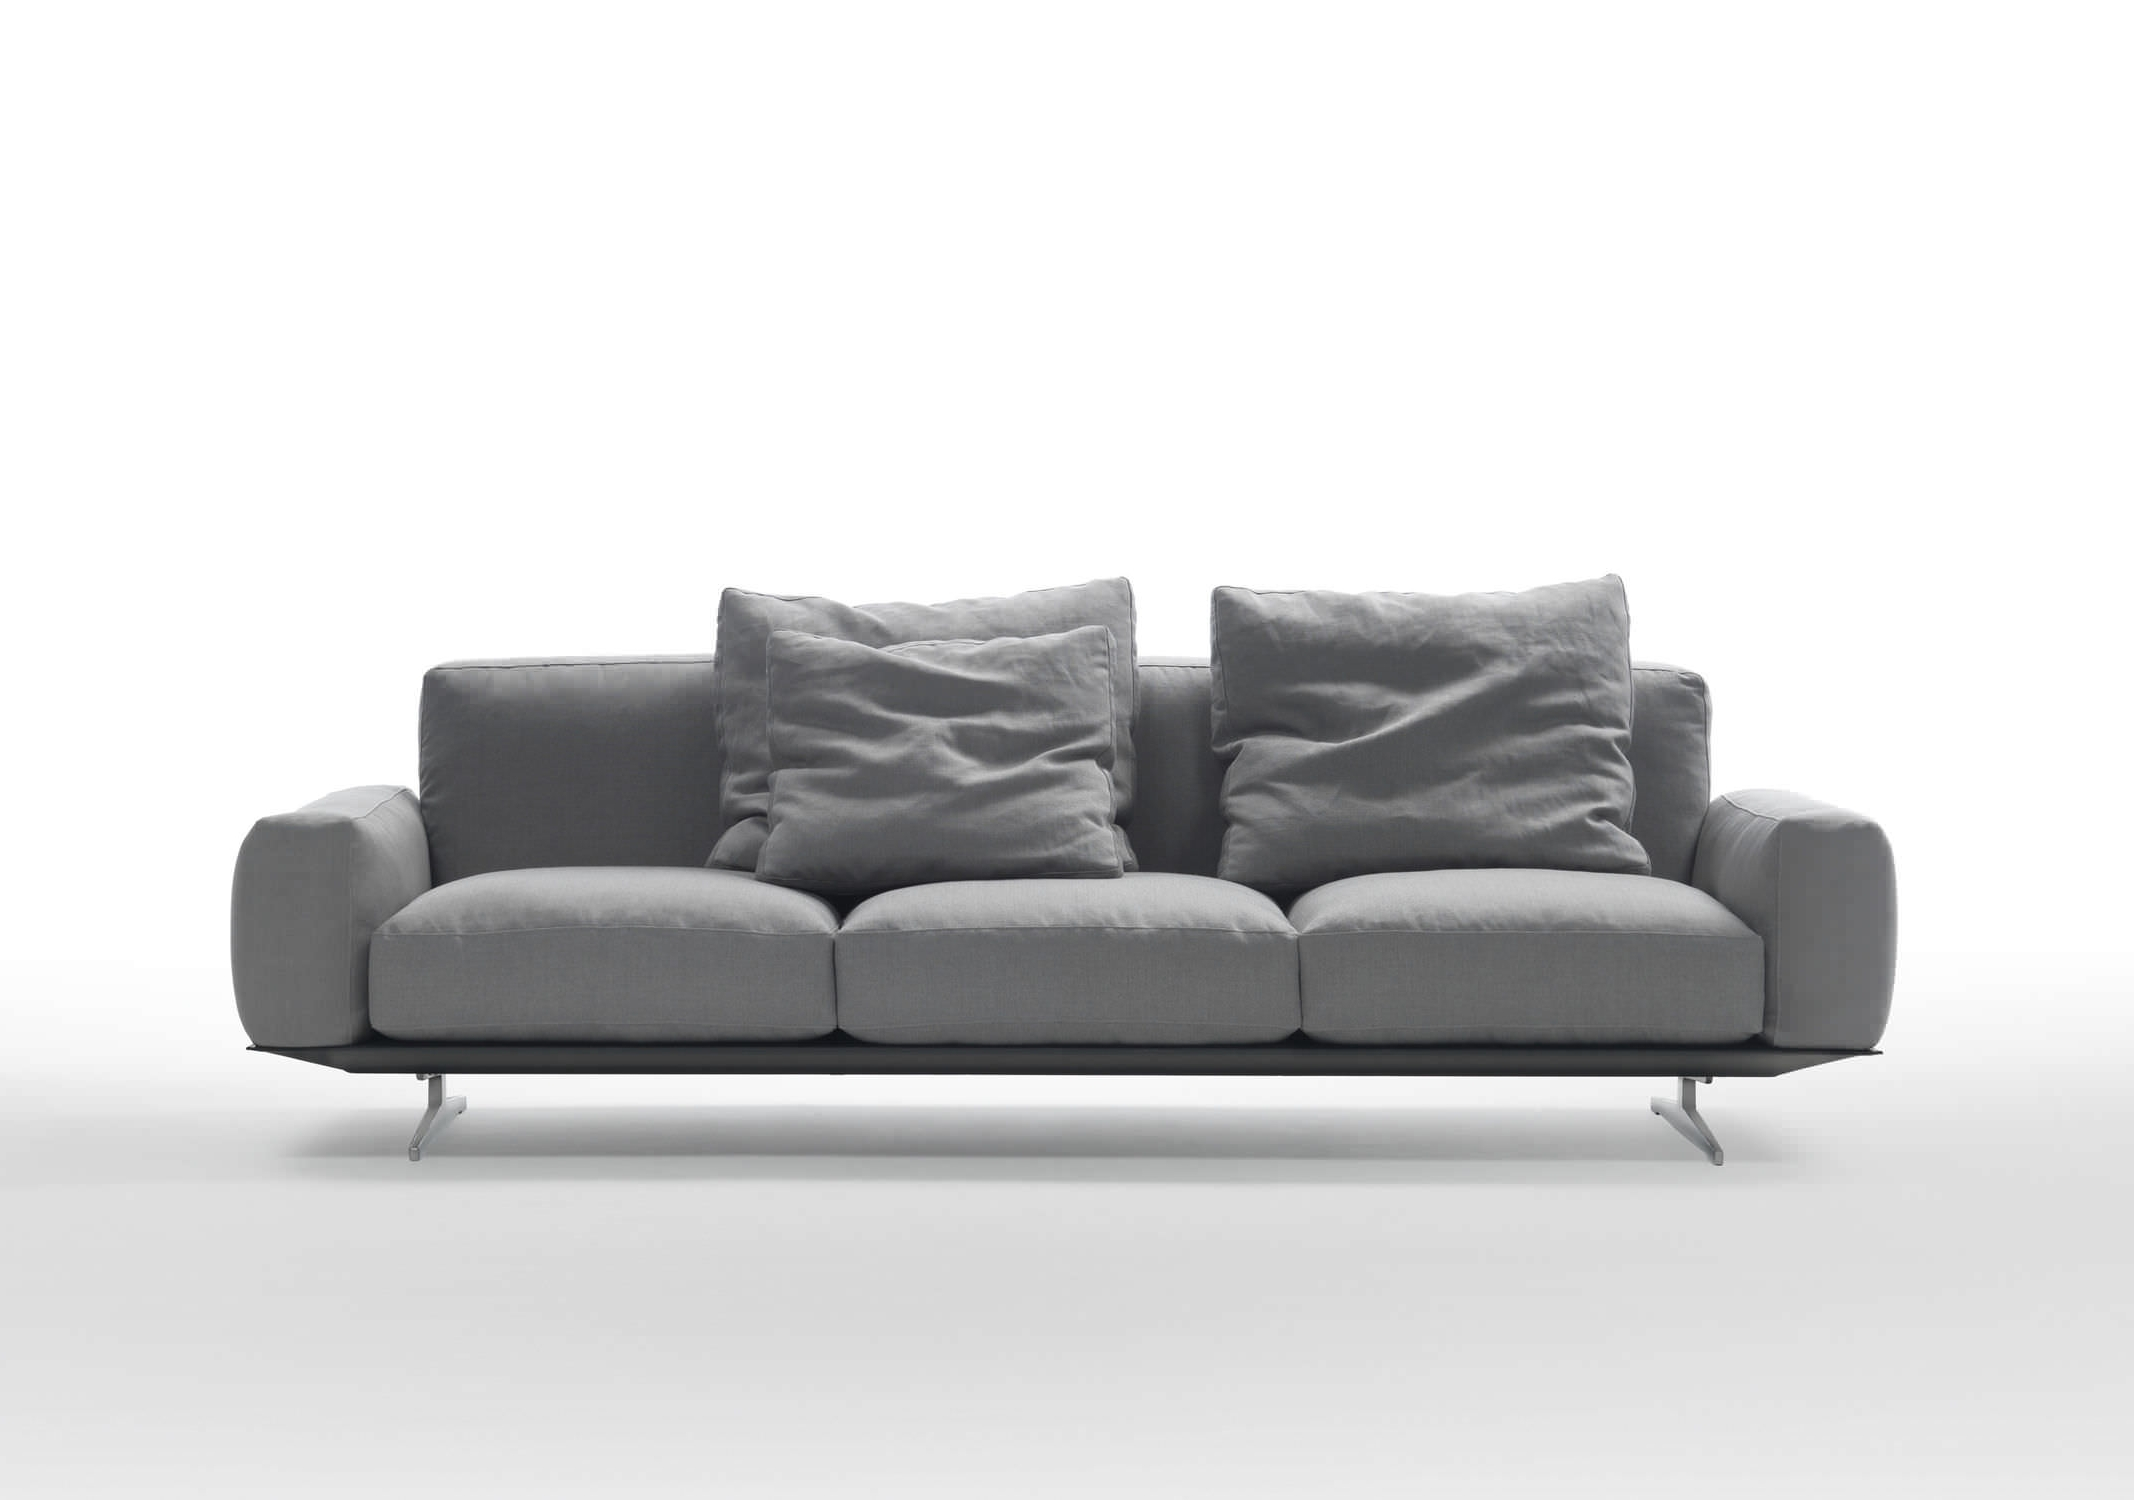 Soft In Soft Sofas (View 11 of 20)